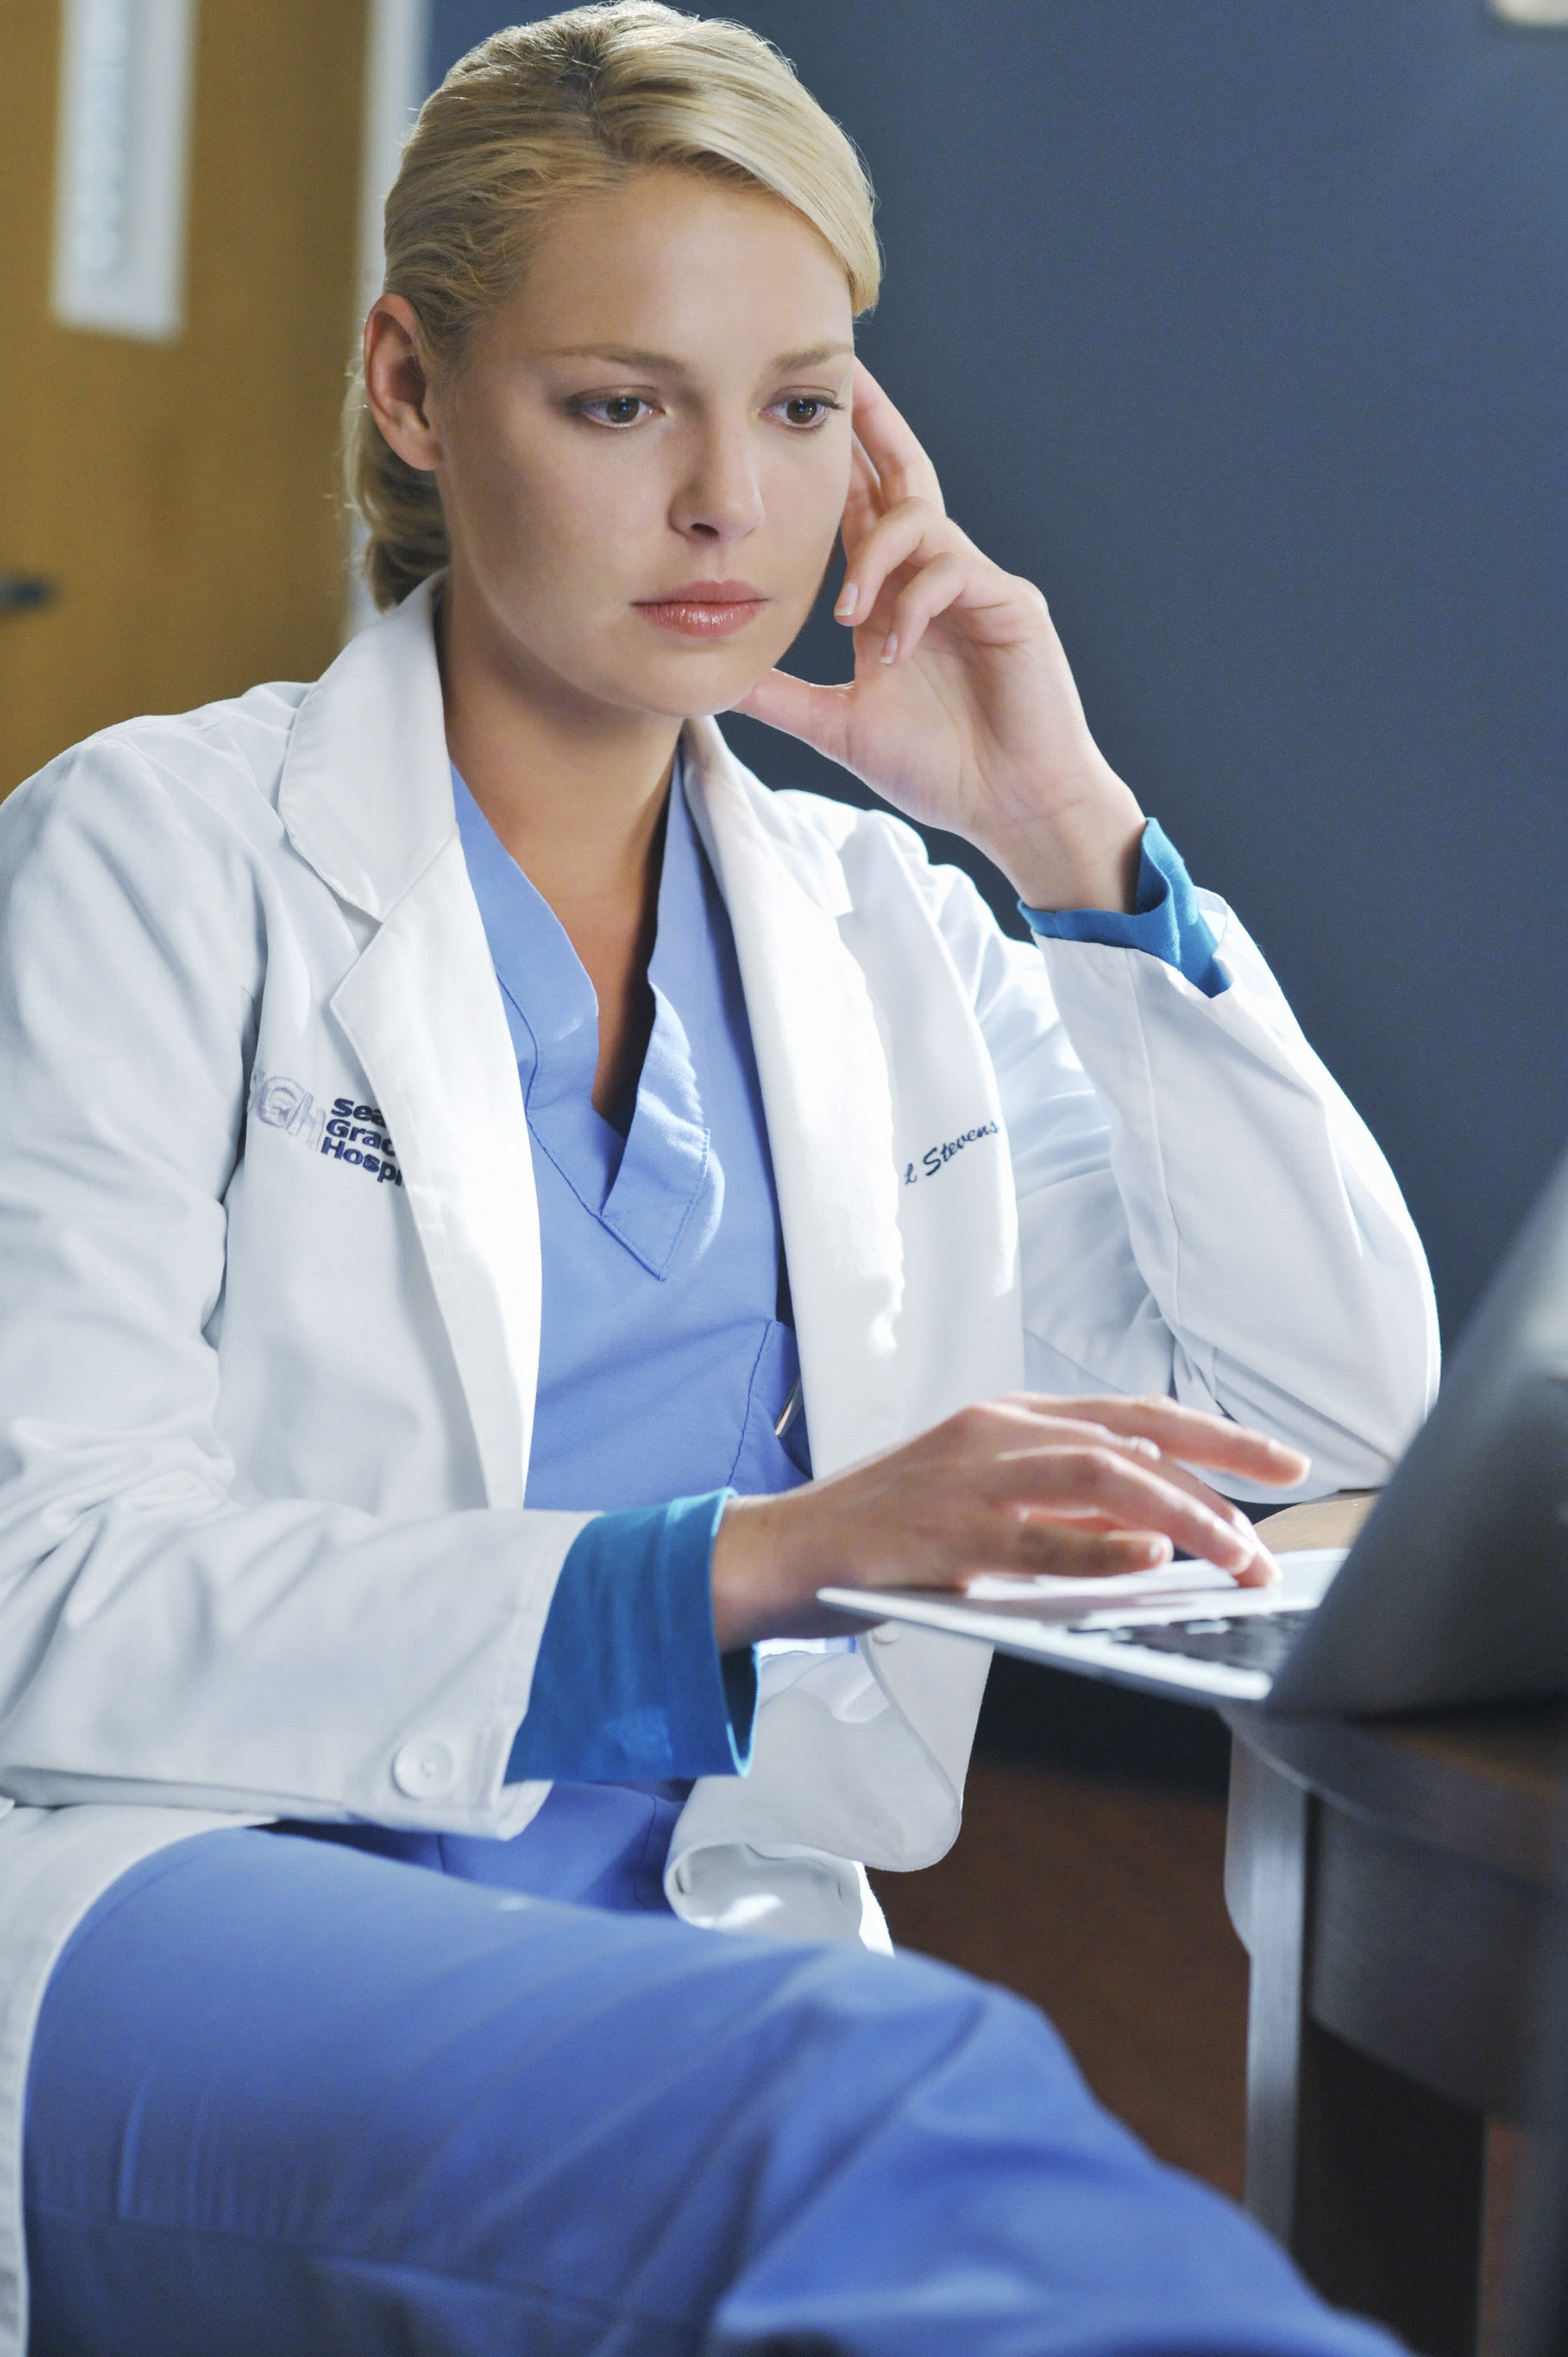 Heigl looks at a laptop with her hand touching her face while wearing scrubs